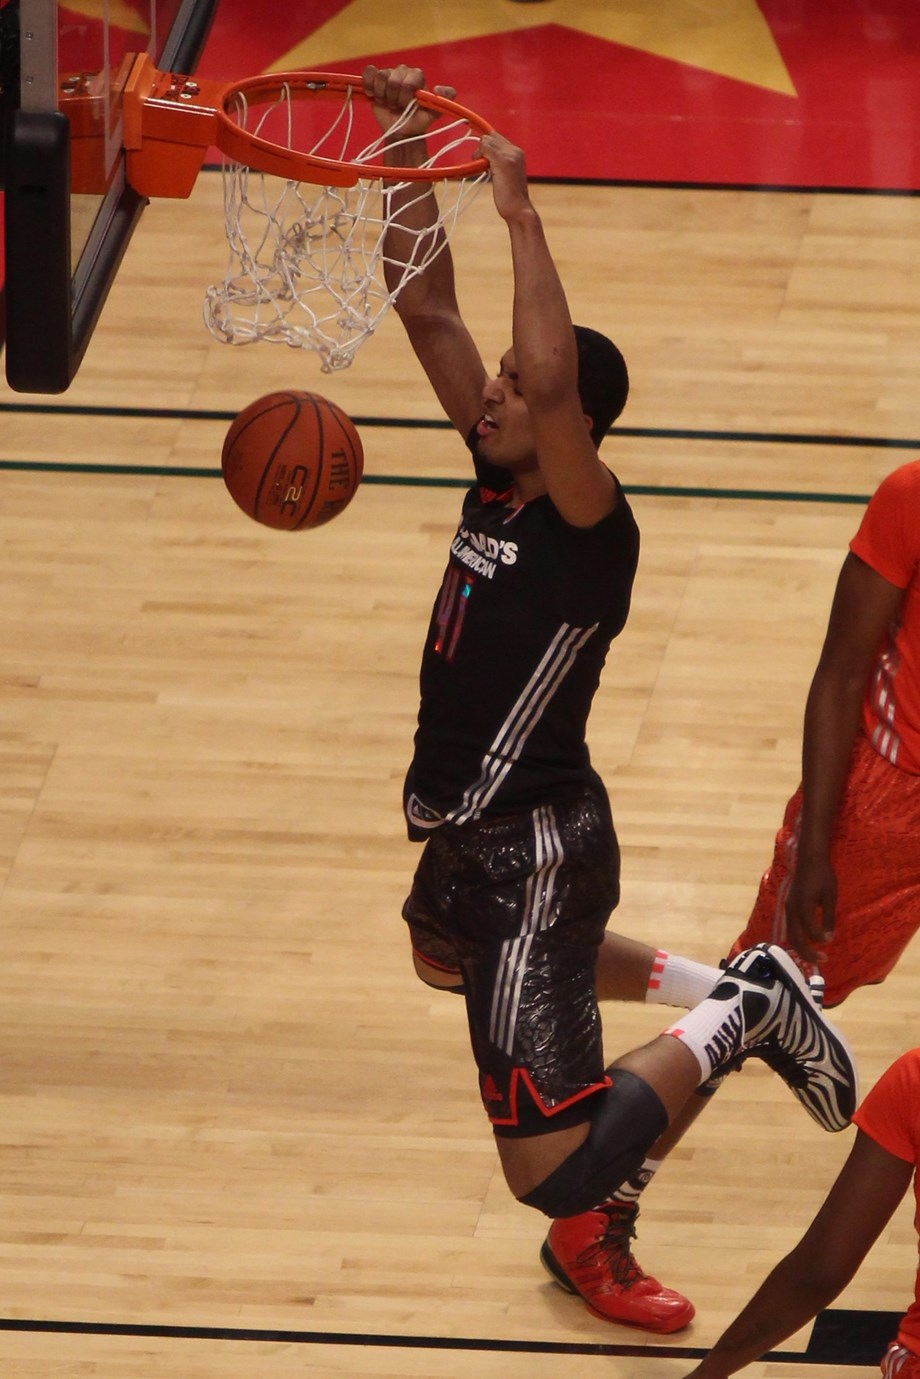 Spurs agree to deal with F Lyles